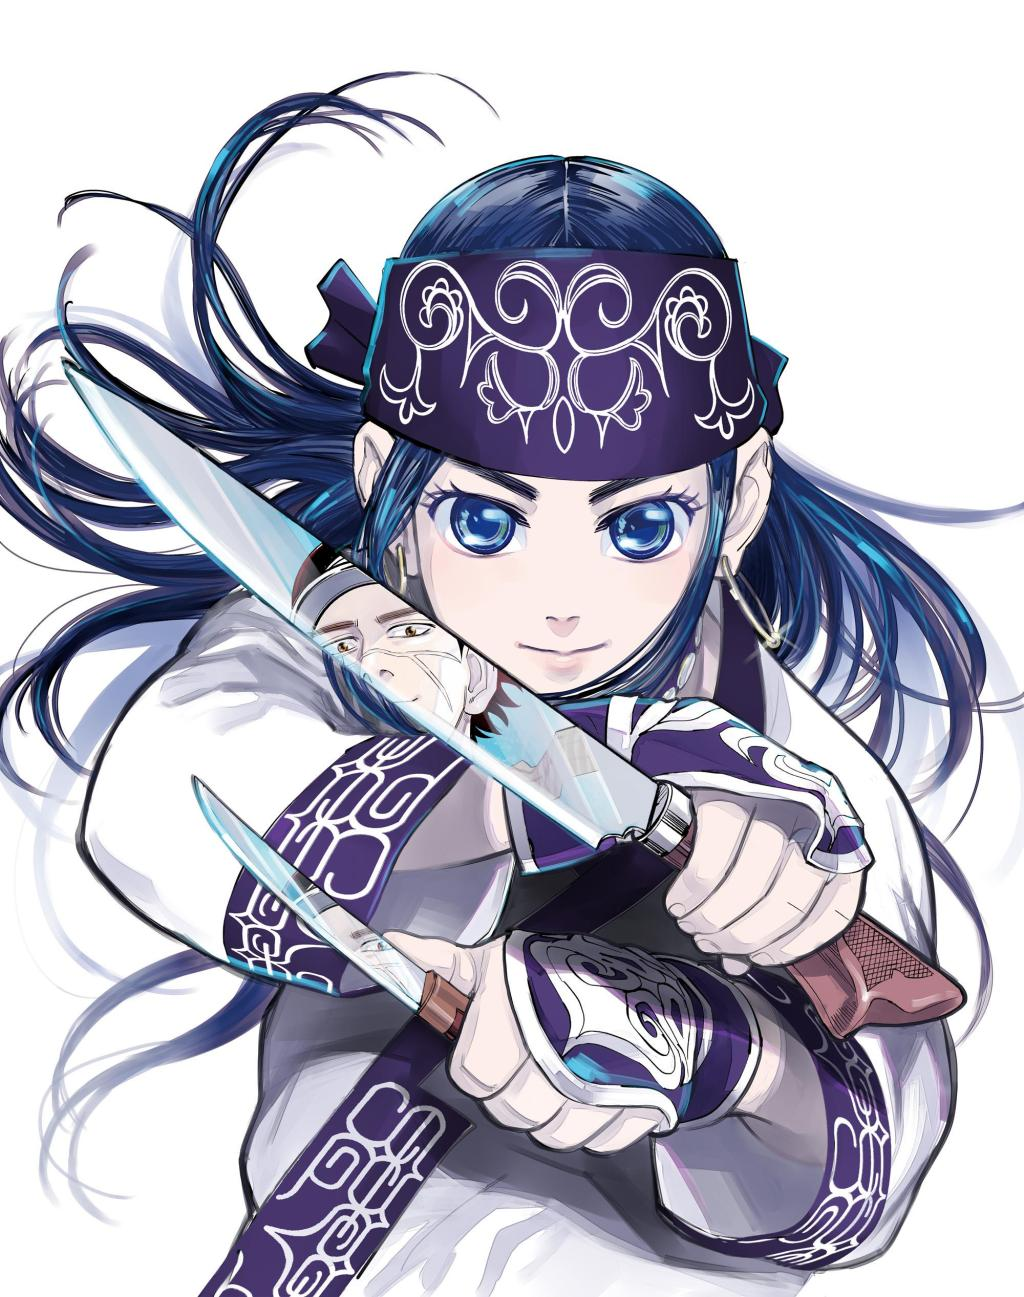 Golden Kamuy Season 3 releases very first PV